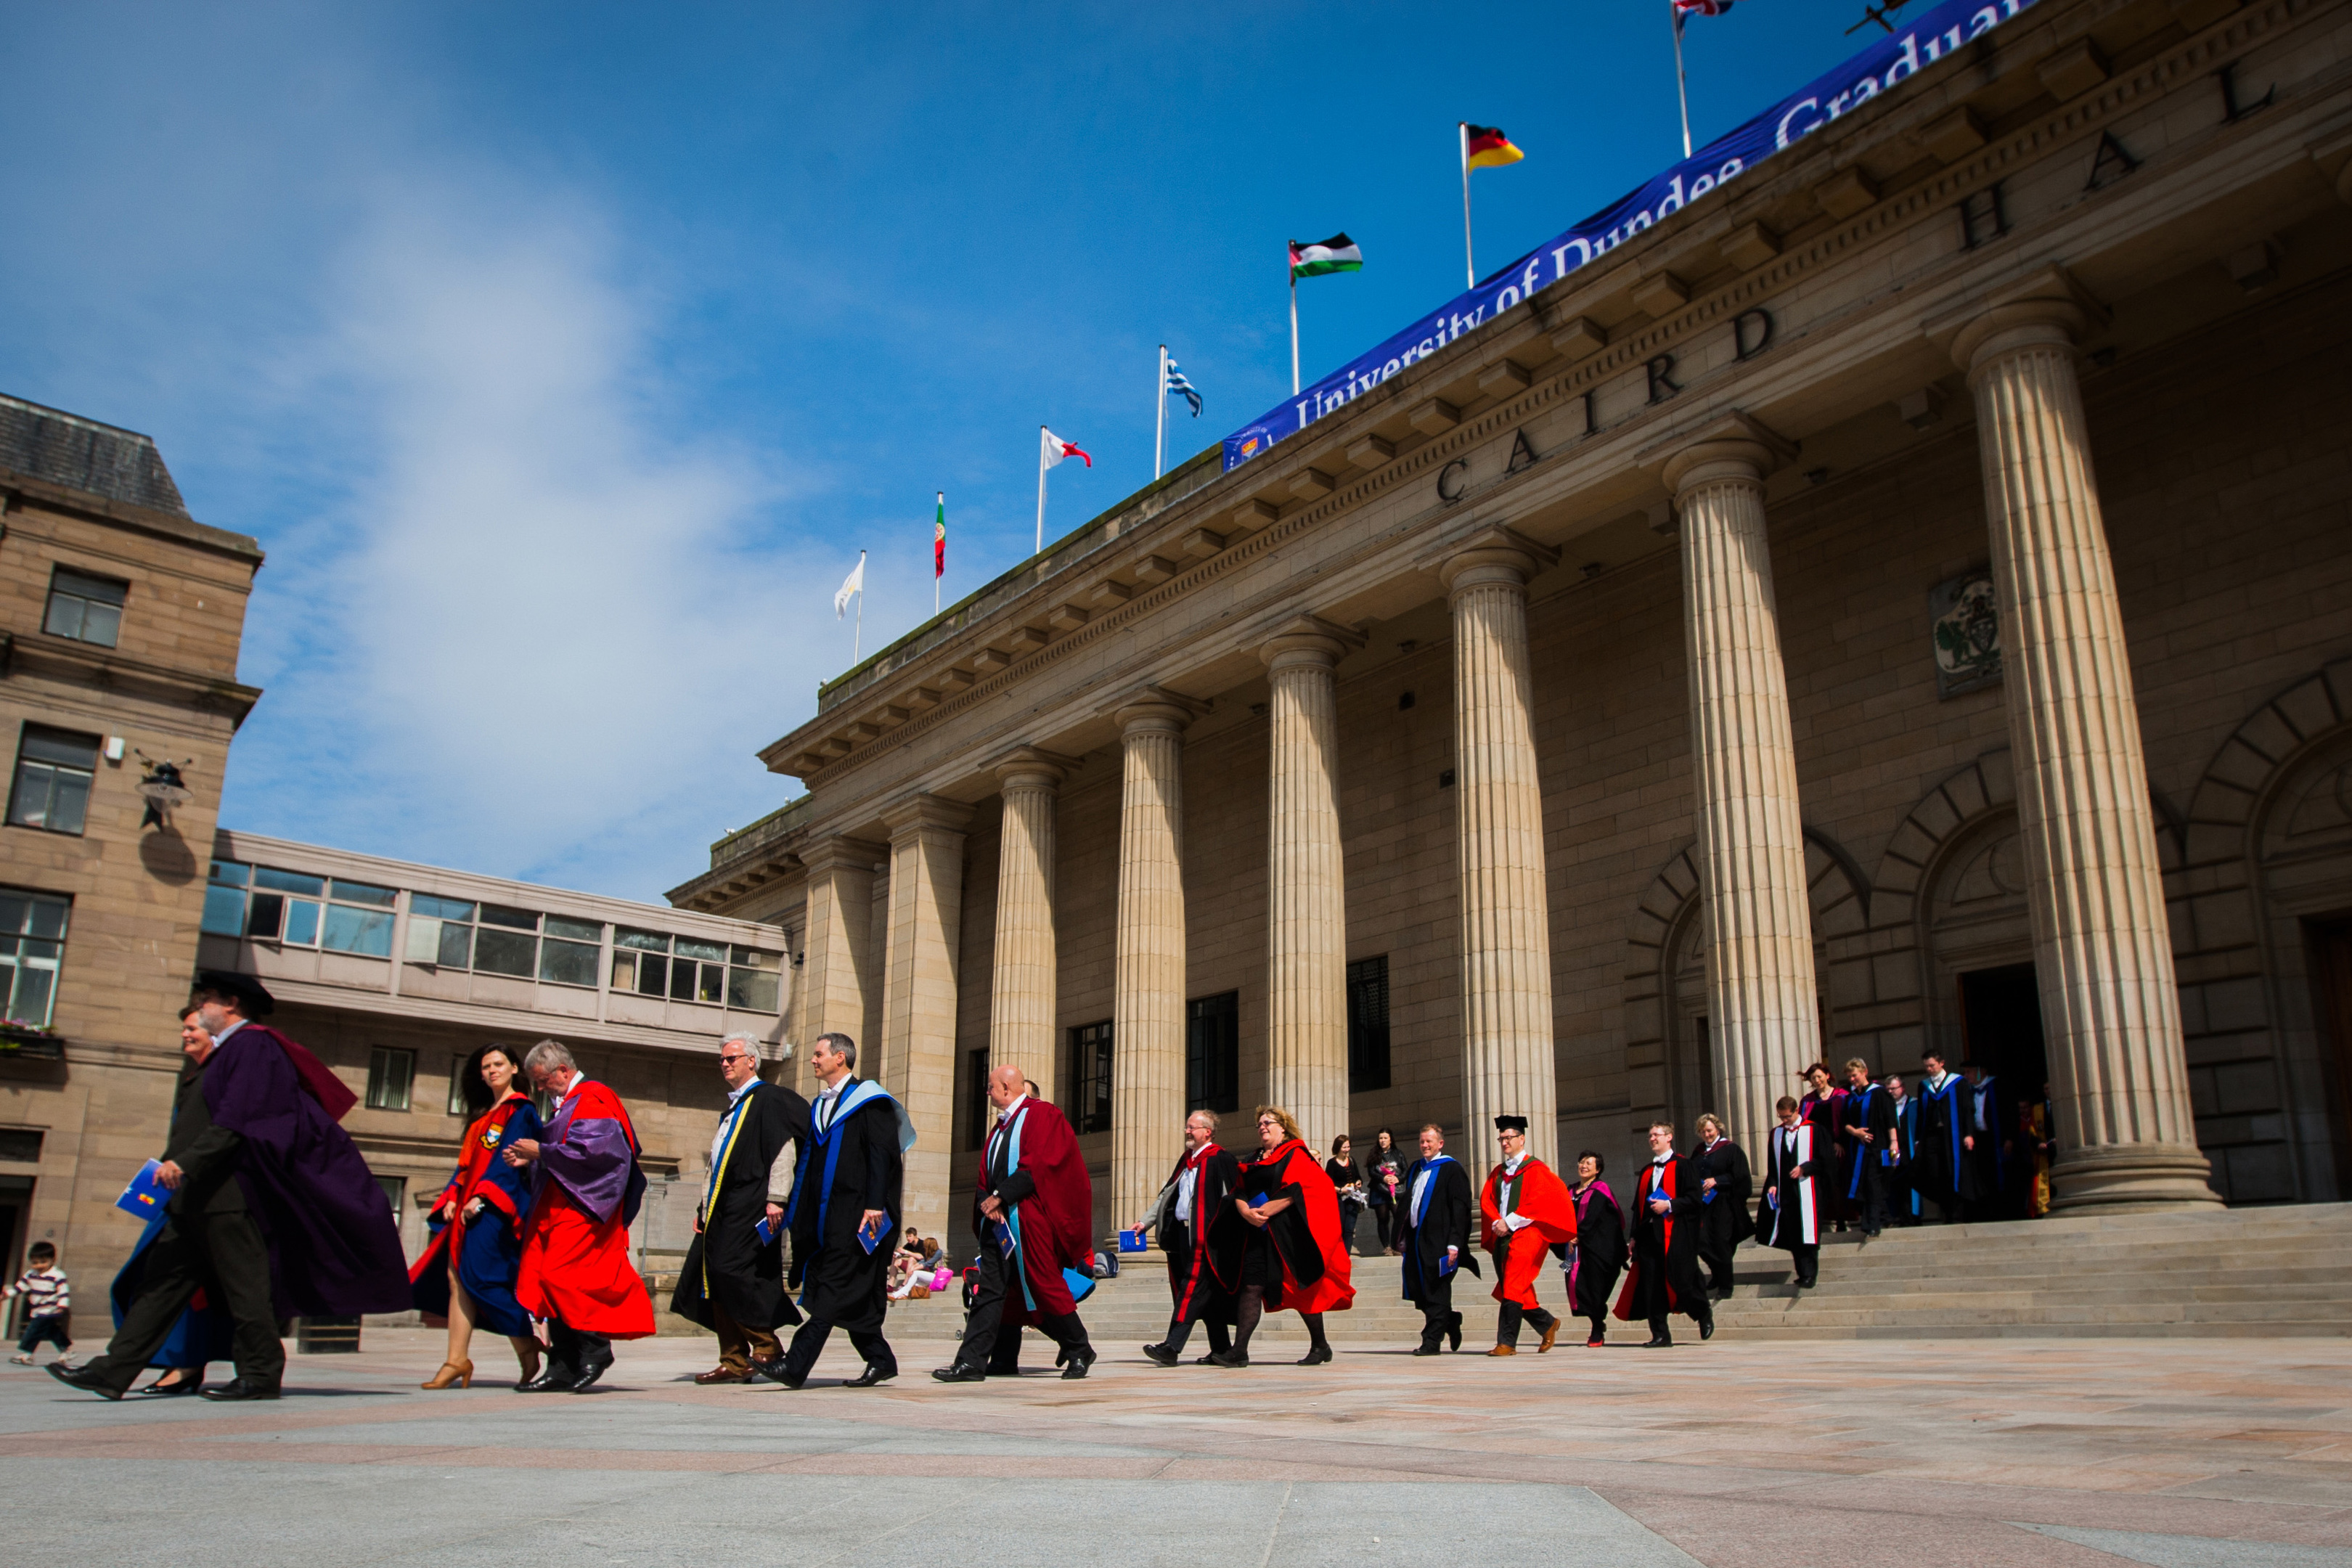 The Caird Hall and City Square will host the upcoming graduation events.